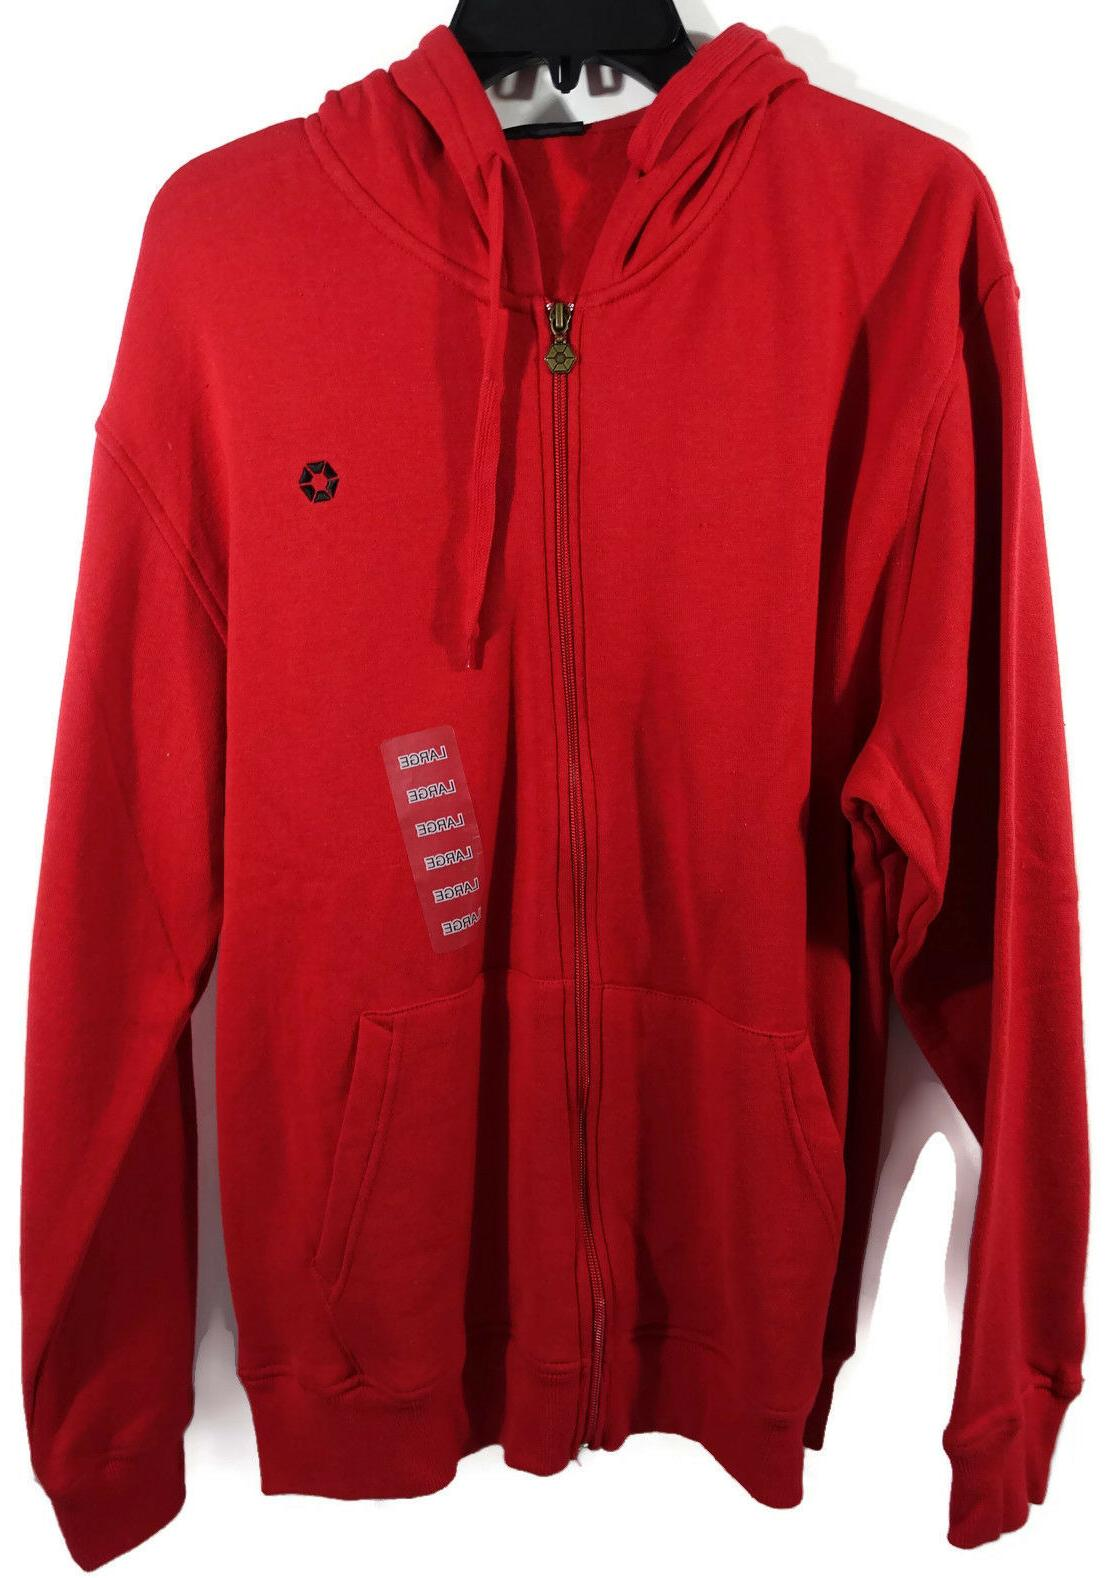 Mens Hoodie Large Southpole Red Zippered Sweatshirt